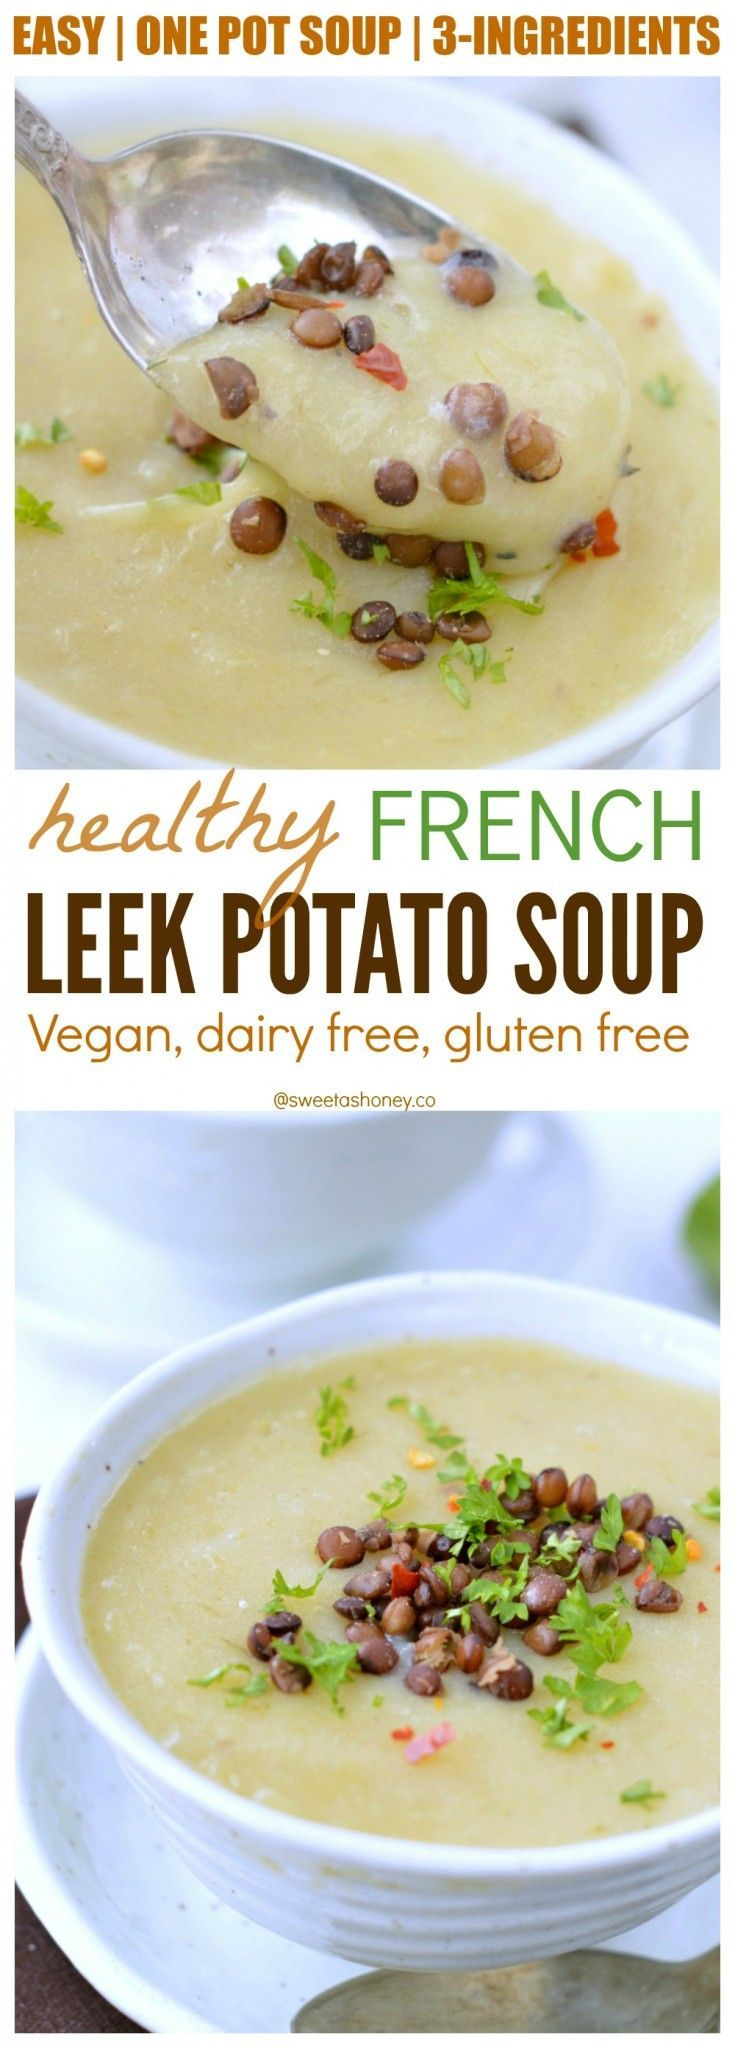 Leek Potato Soup, Vegan Soup